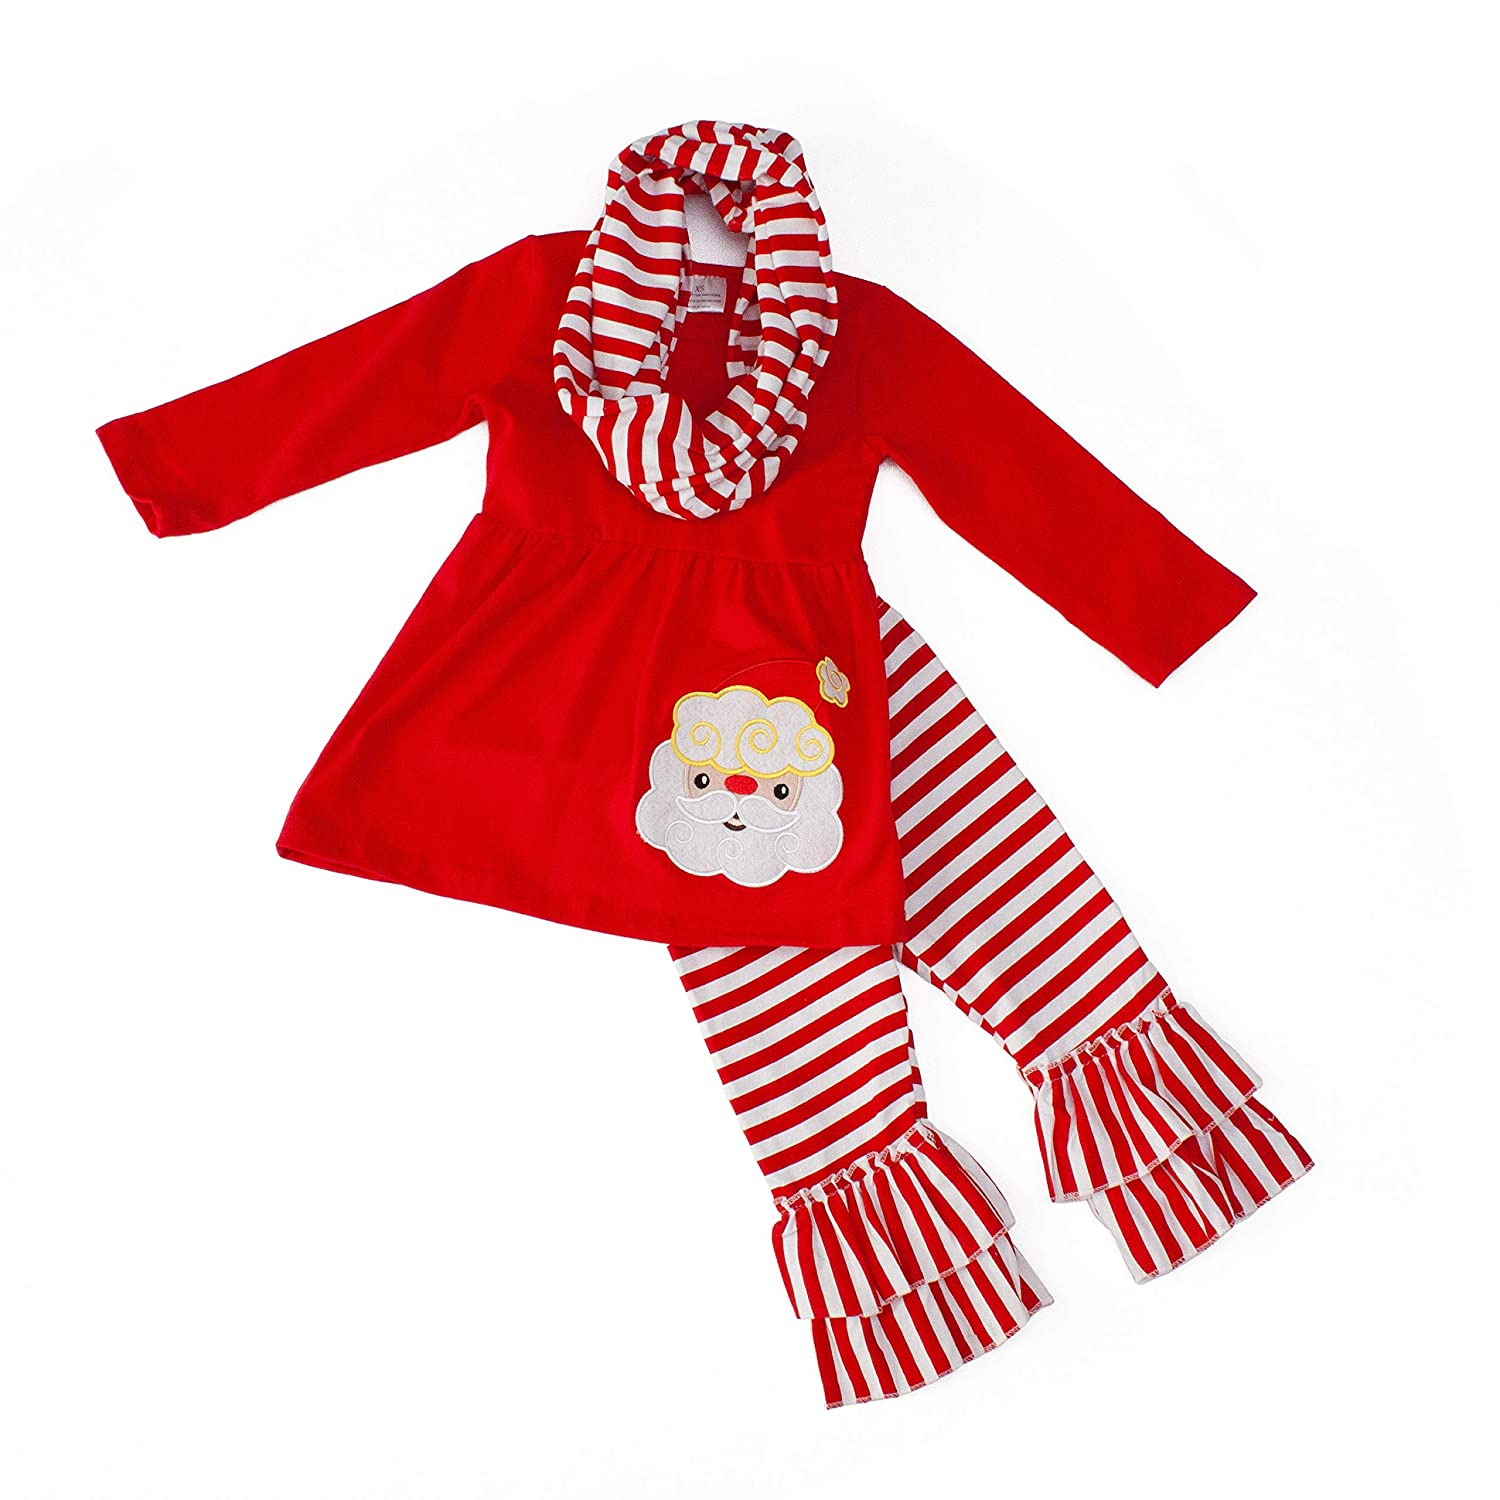 Dress Up Dreams Boutique Santa and Stripes Three-Piece Christmas Outfit